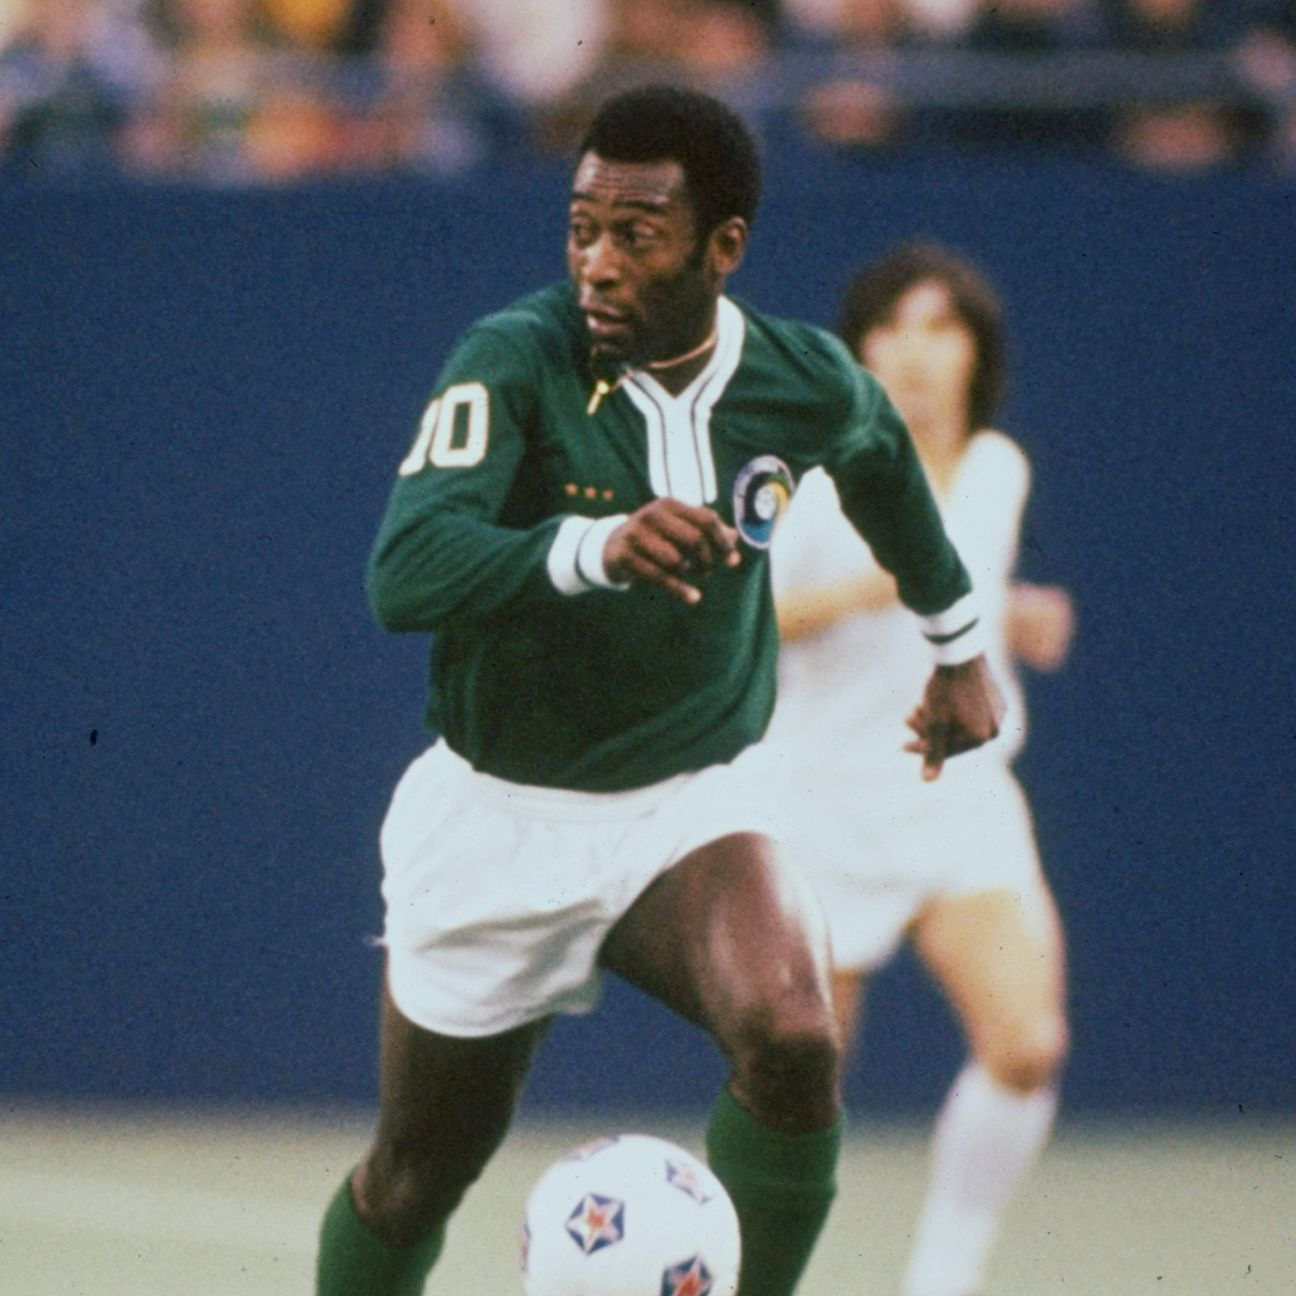 Ever the ambassador, Pele made soccer cool in the United States in the 1970's while playing for the New York Cosmos.